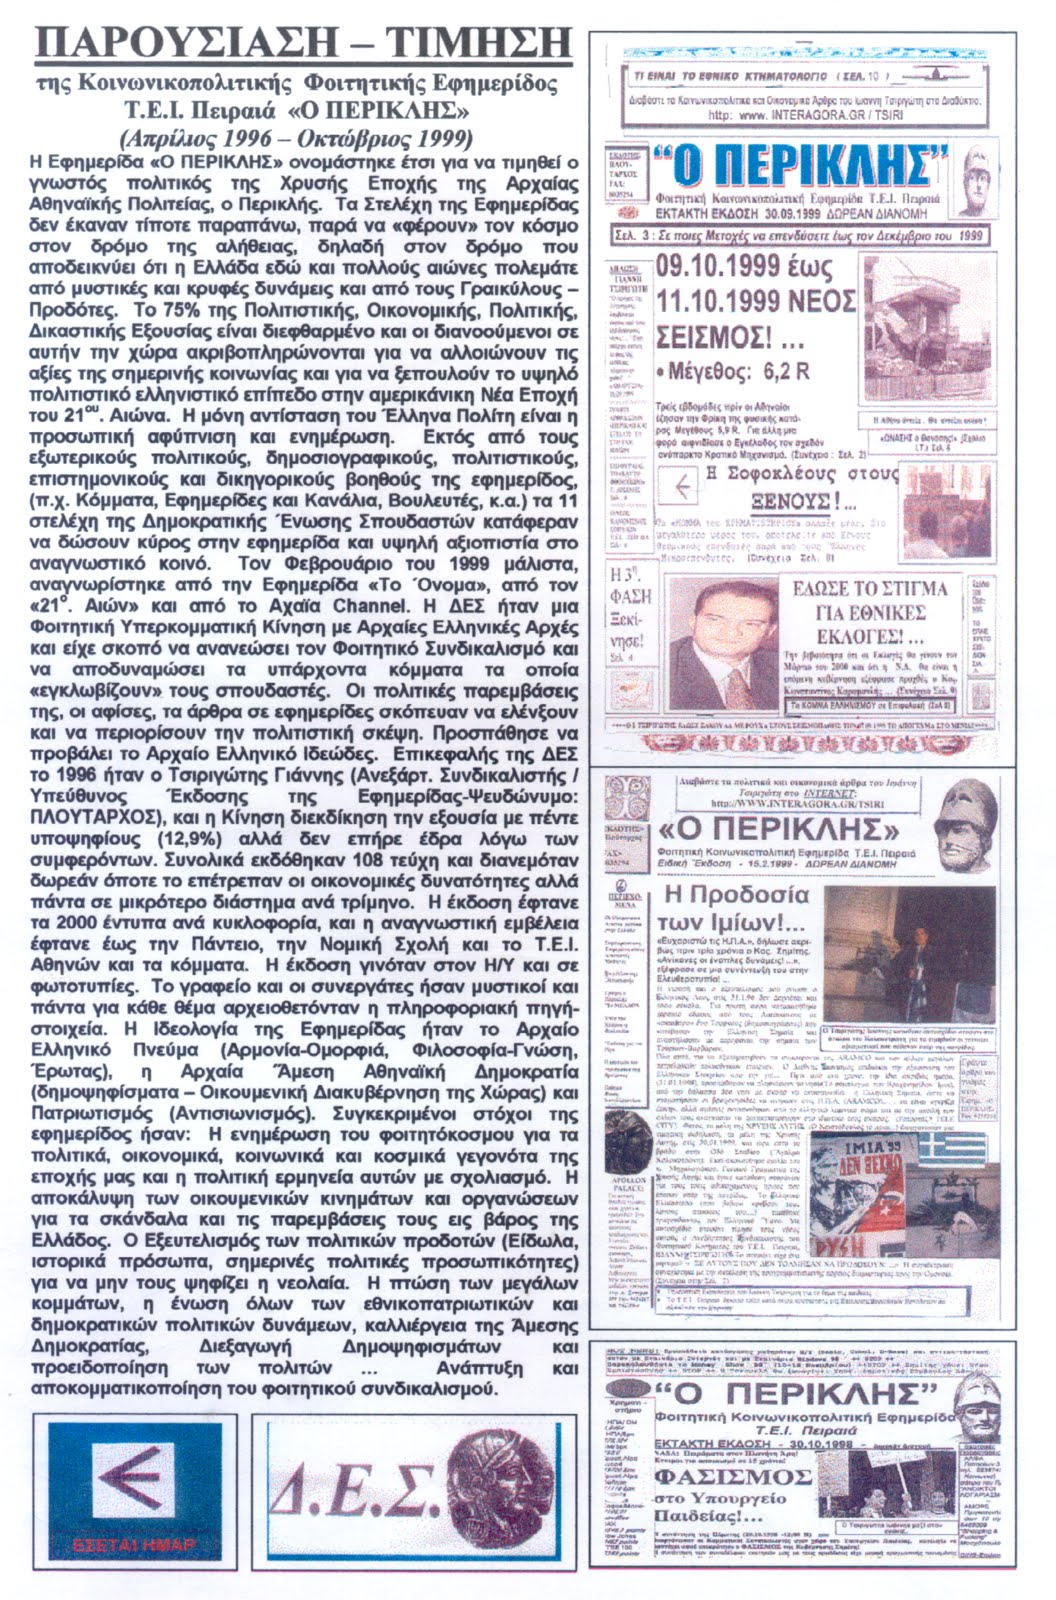 ΤΗΕ PERICLES NEWSPAPER TEI PERAIUS OF THE MR. GIANNIS TSIRIGOTIS AND OF THE MRS. BETTY MAGGIRA!....